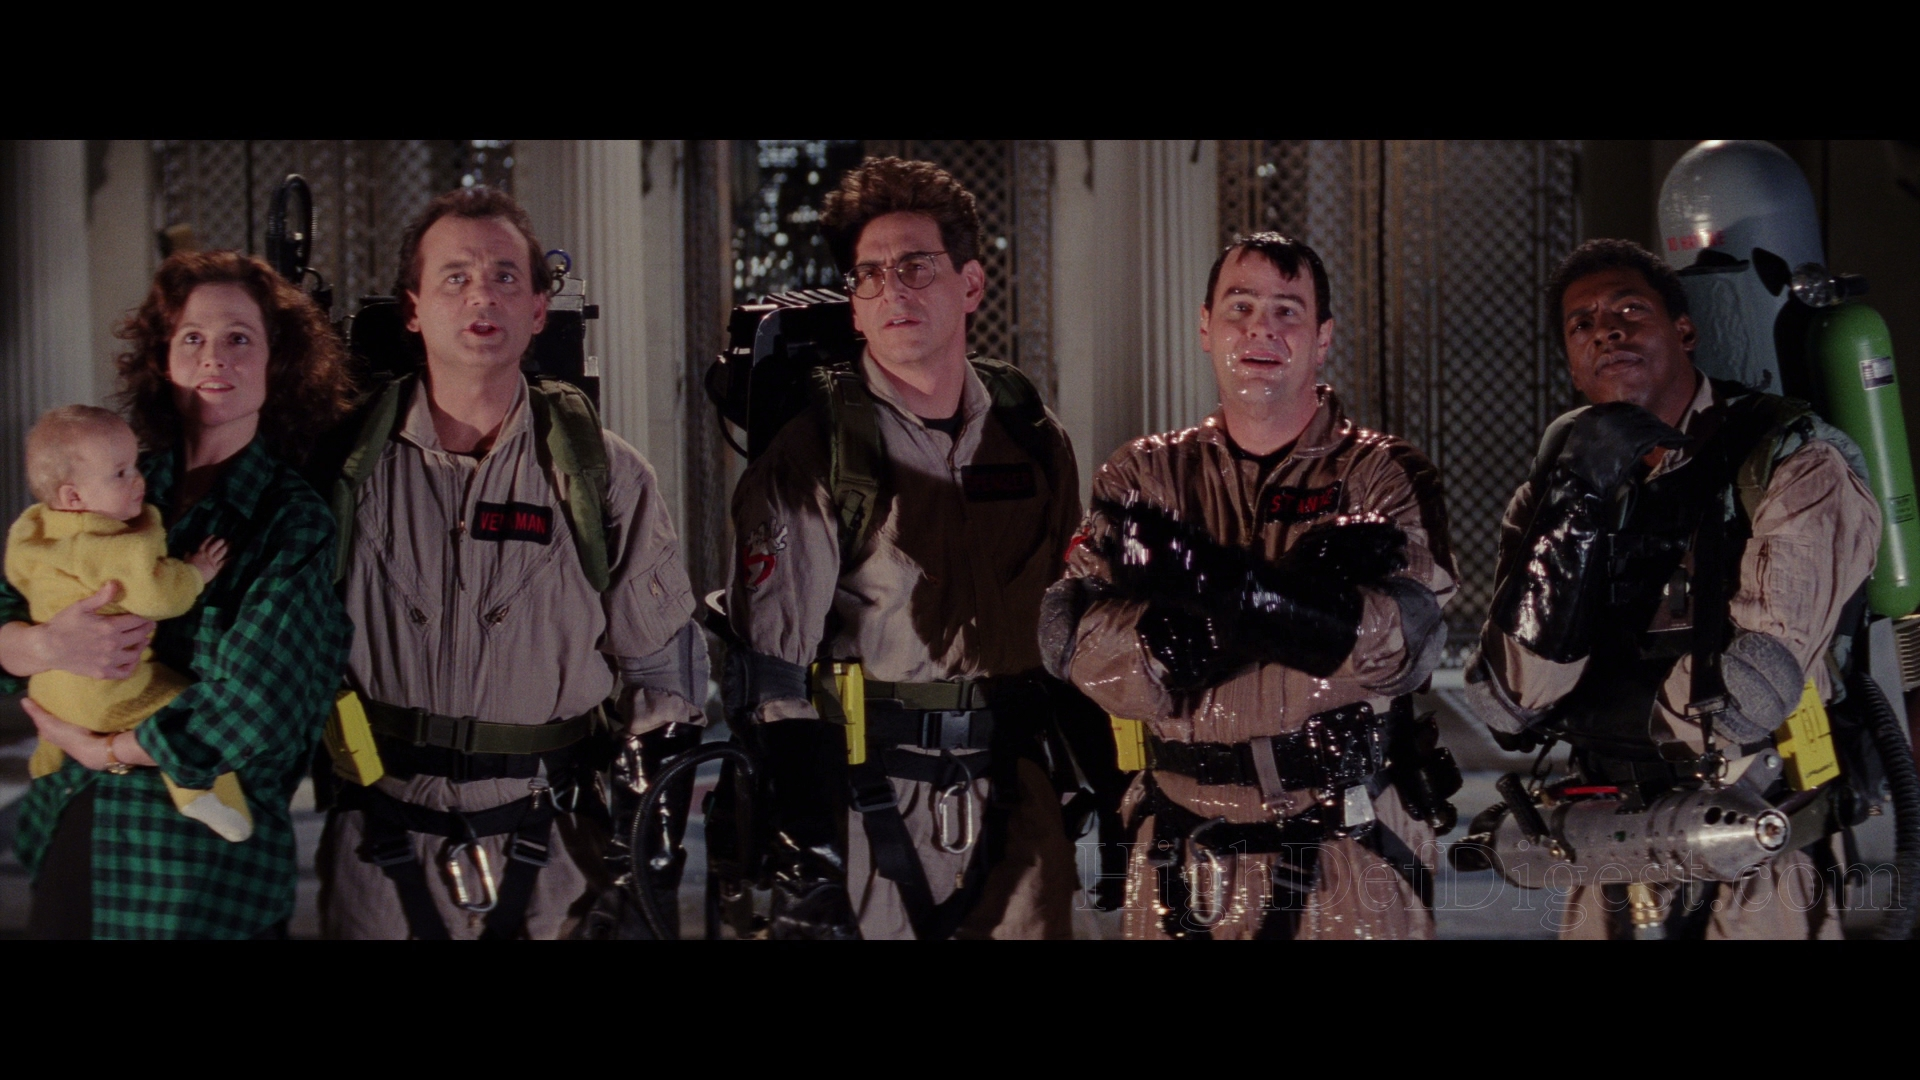 a review of the film ghostbusters produced in 1984